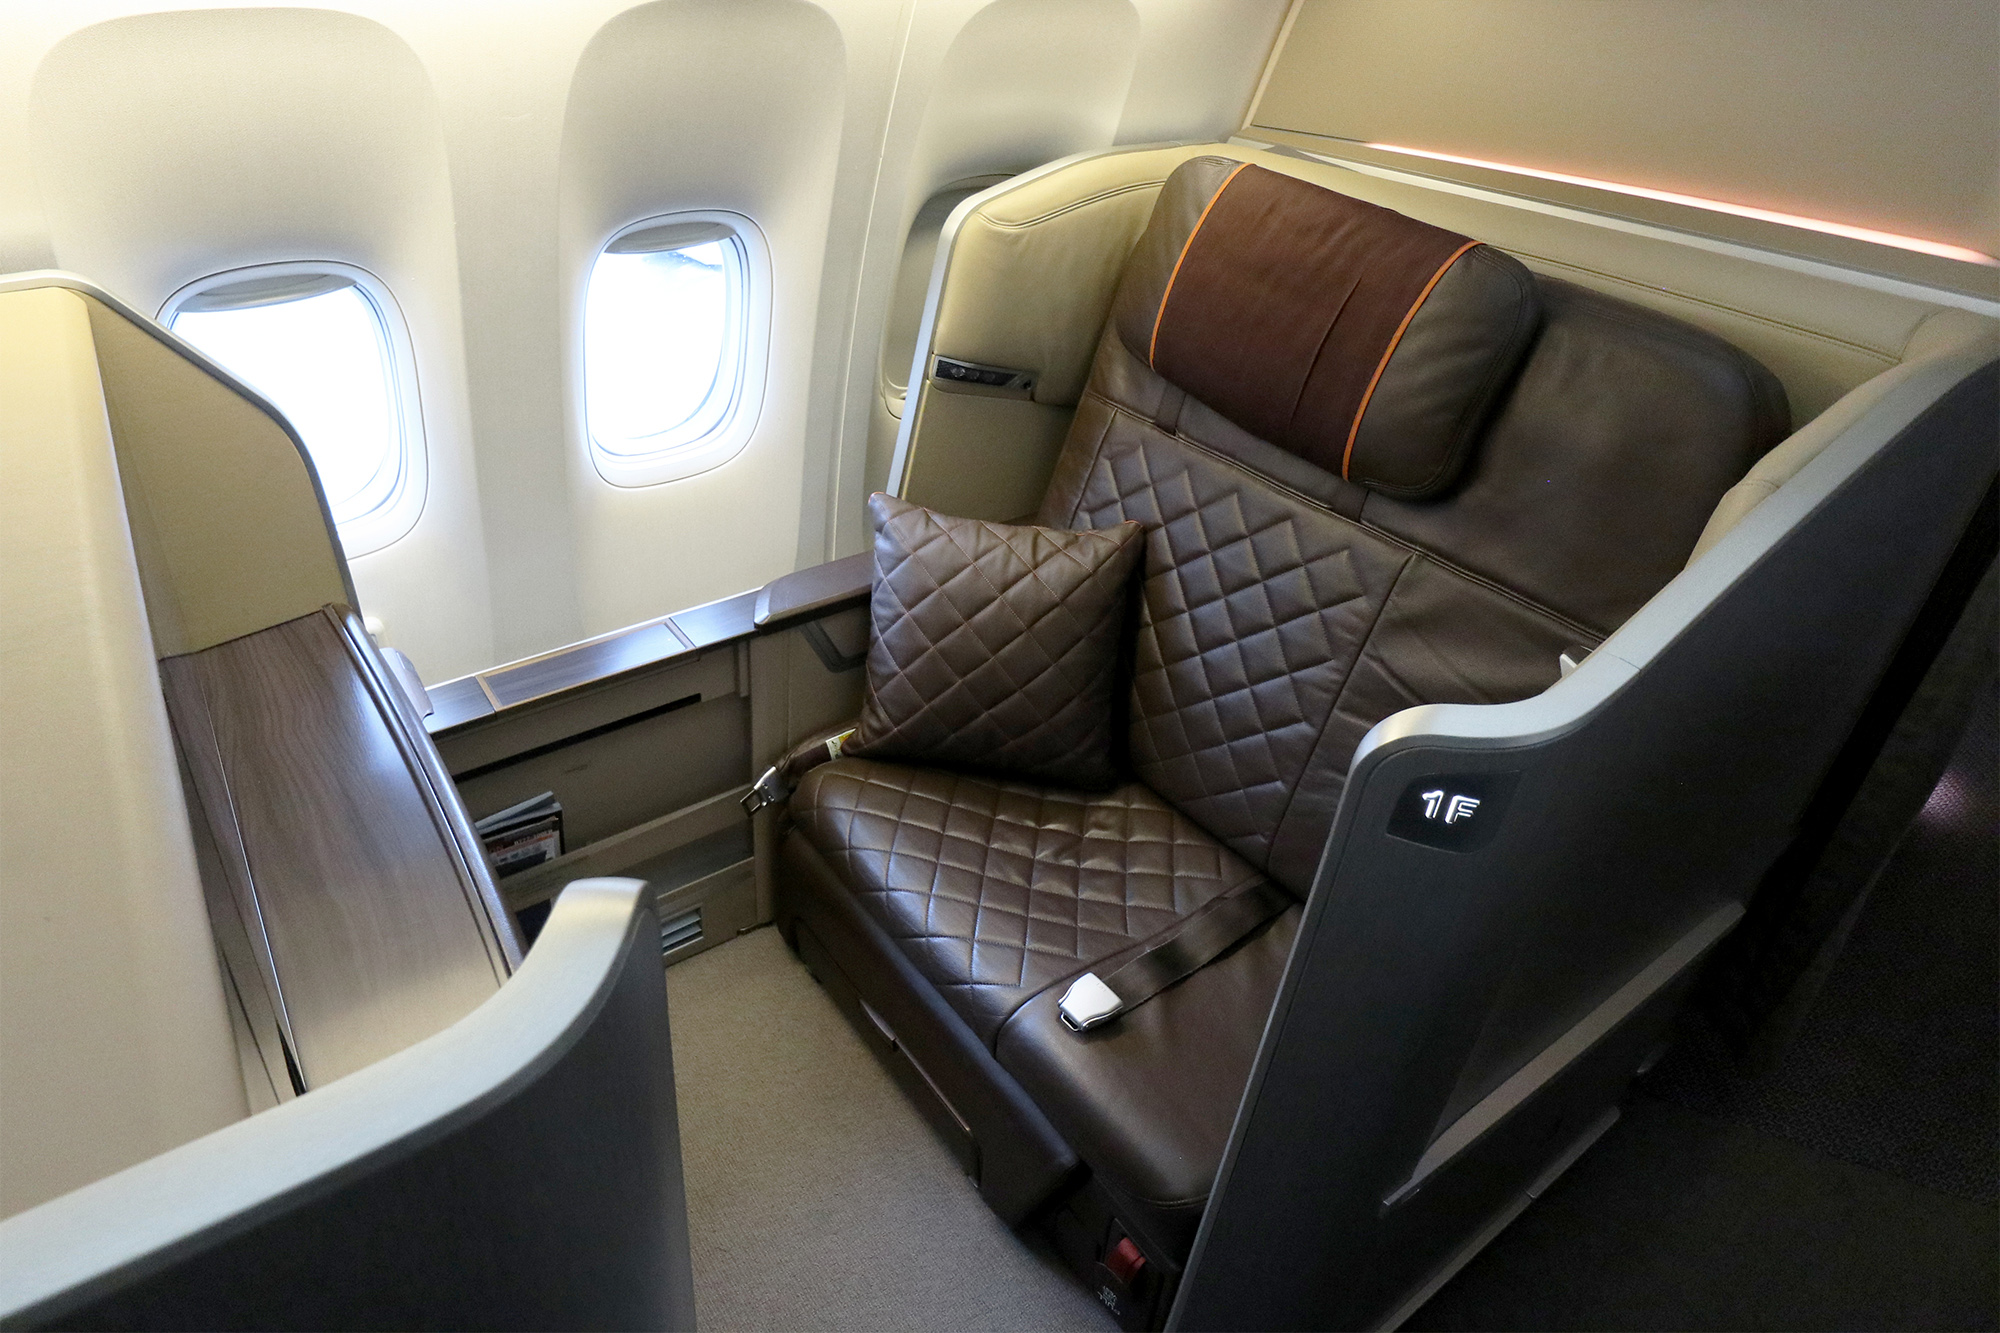 SIA will fly its 777-300ER First Class seats to Jakarta from March 2020